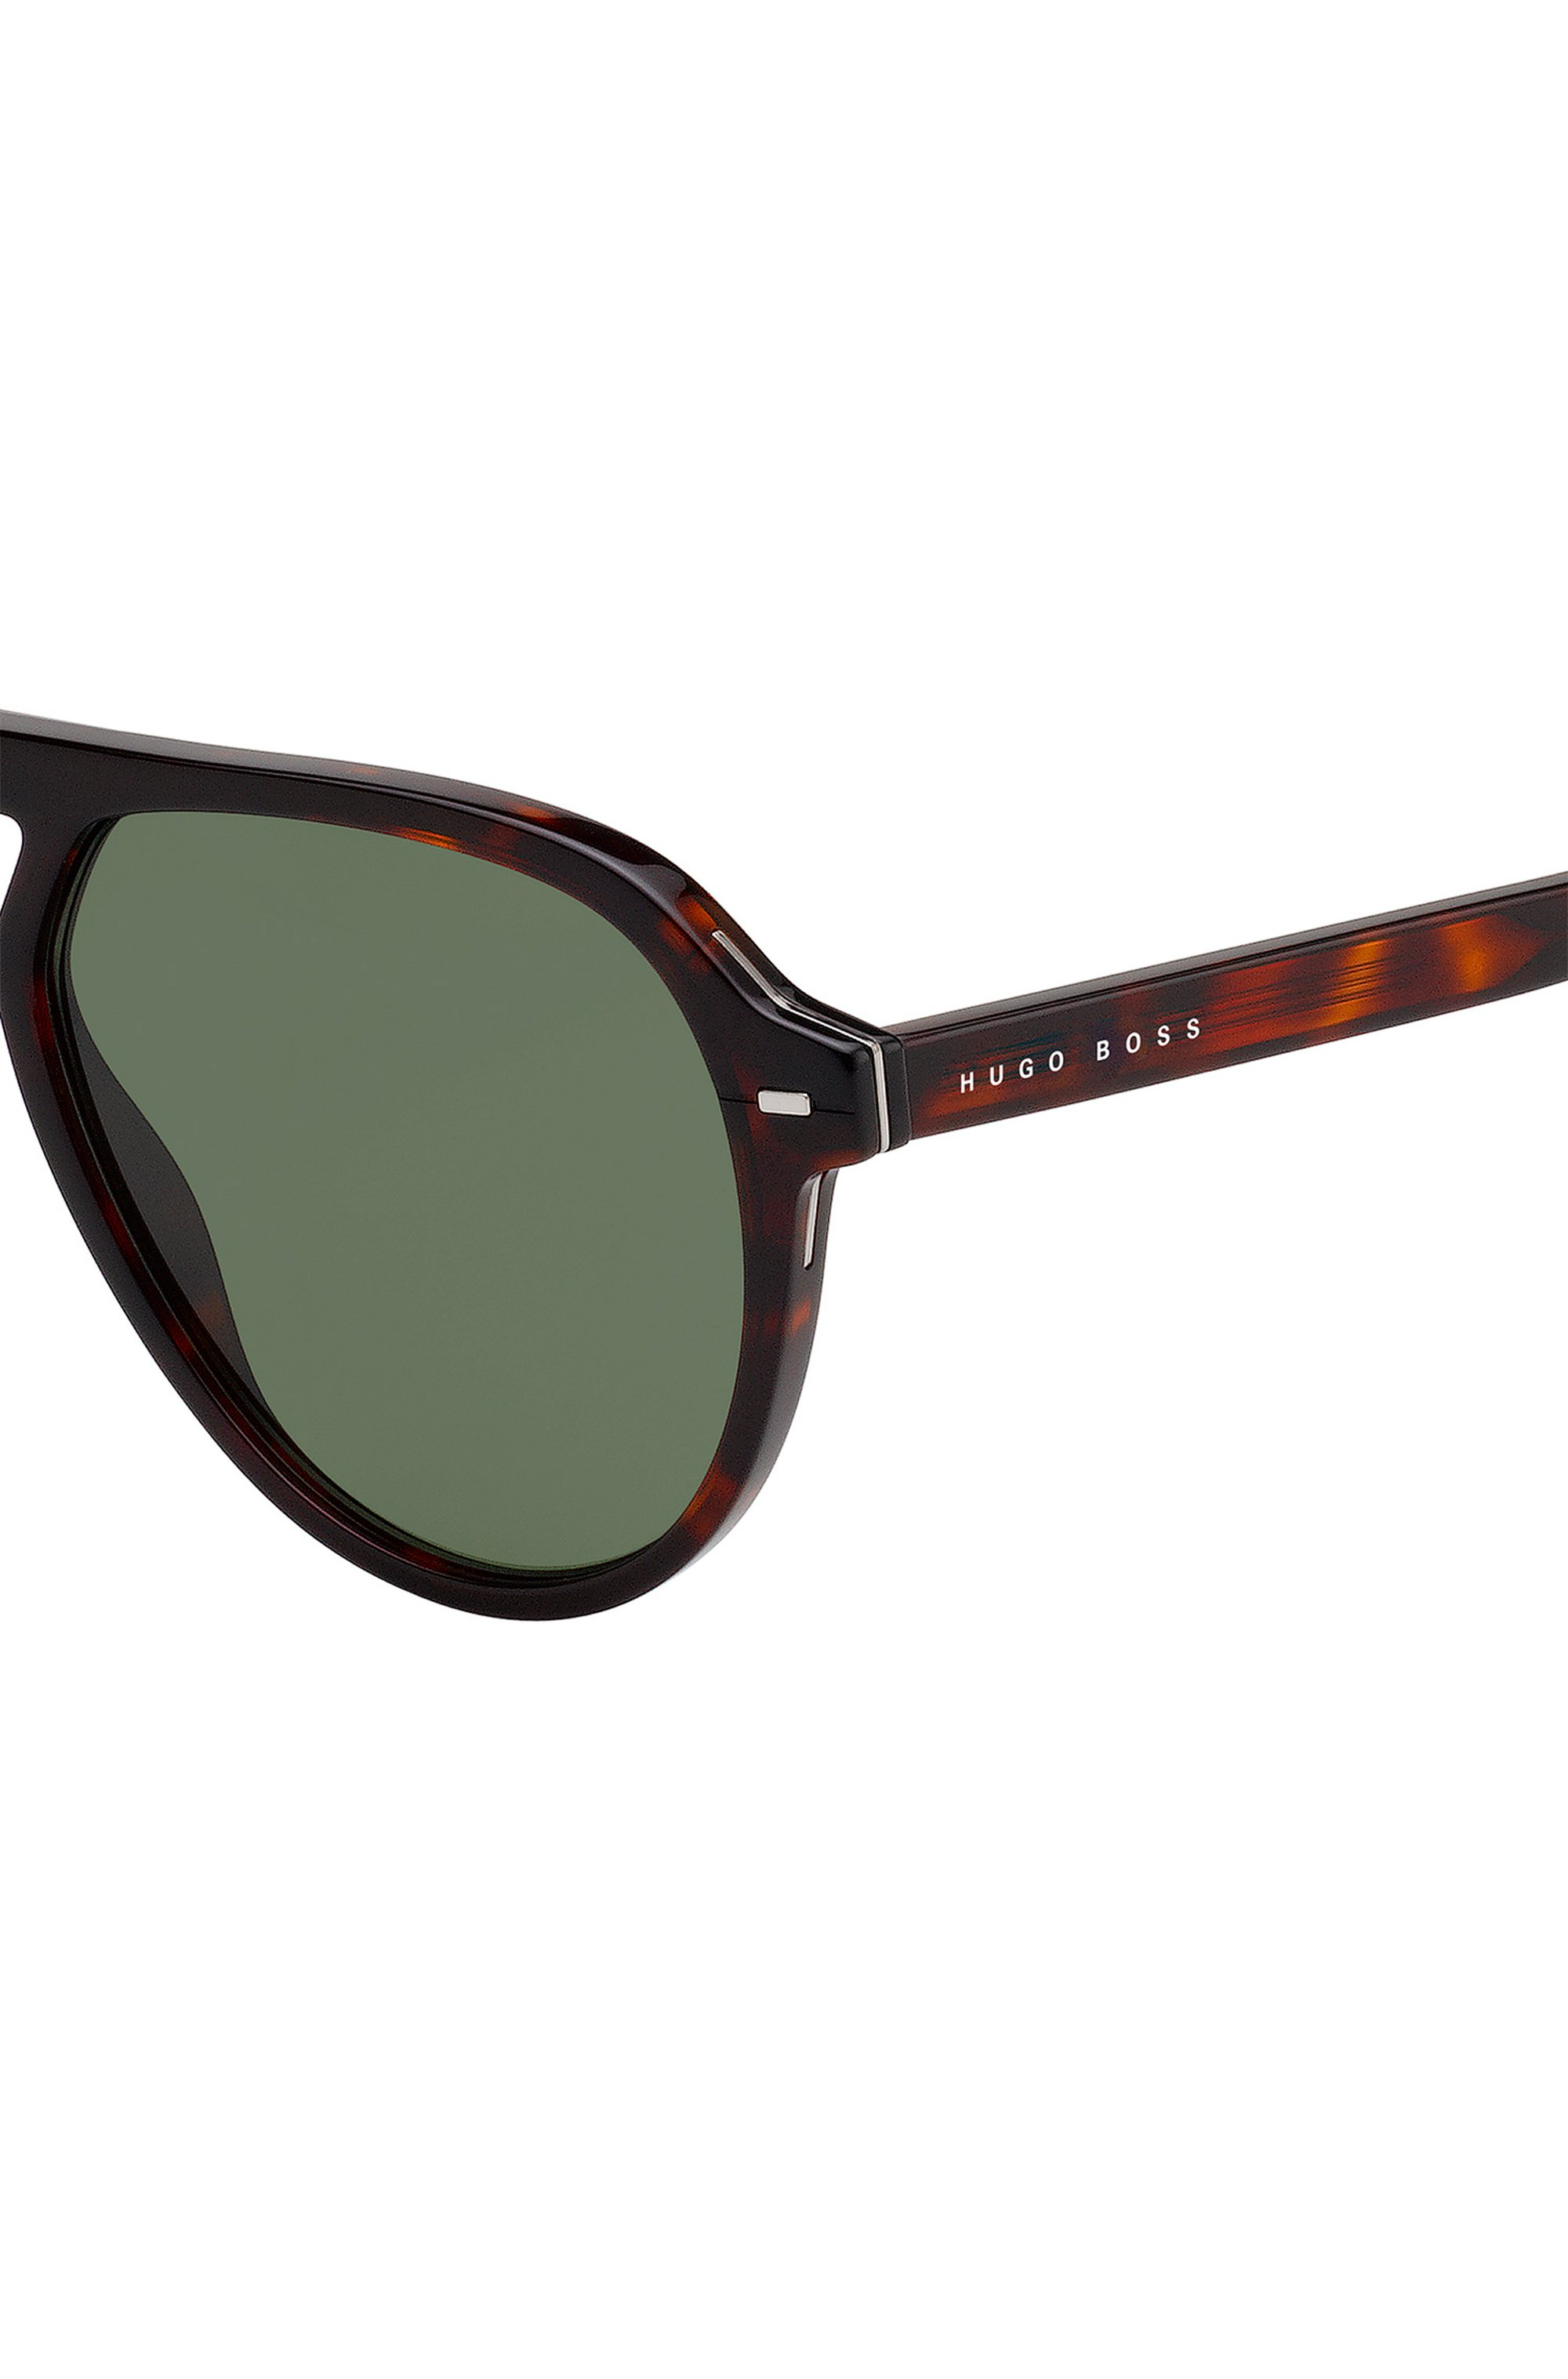 Havana sunglasses in acetate with hardware accents